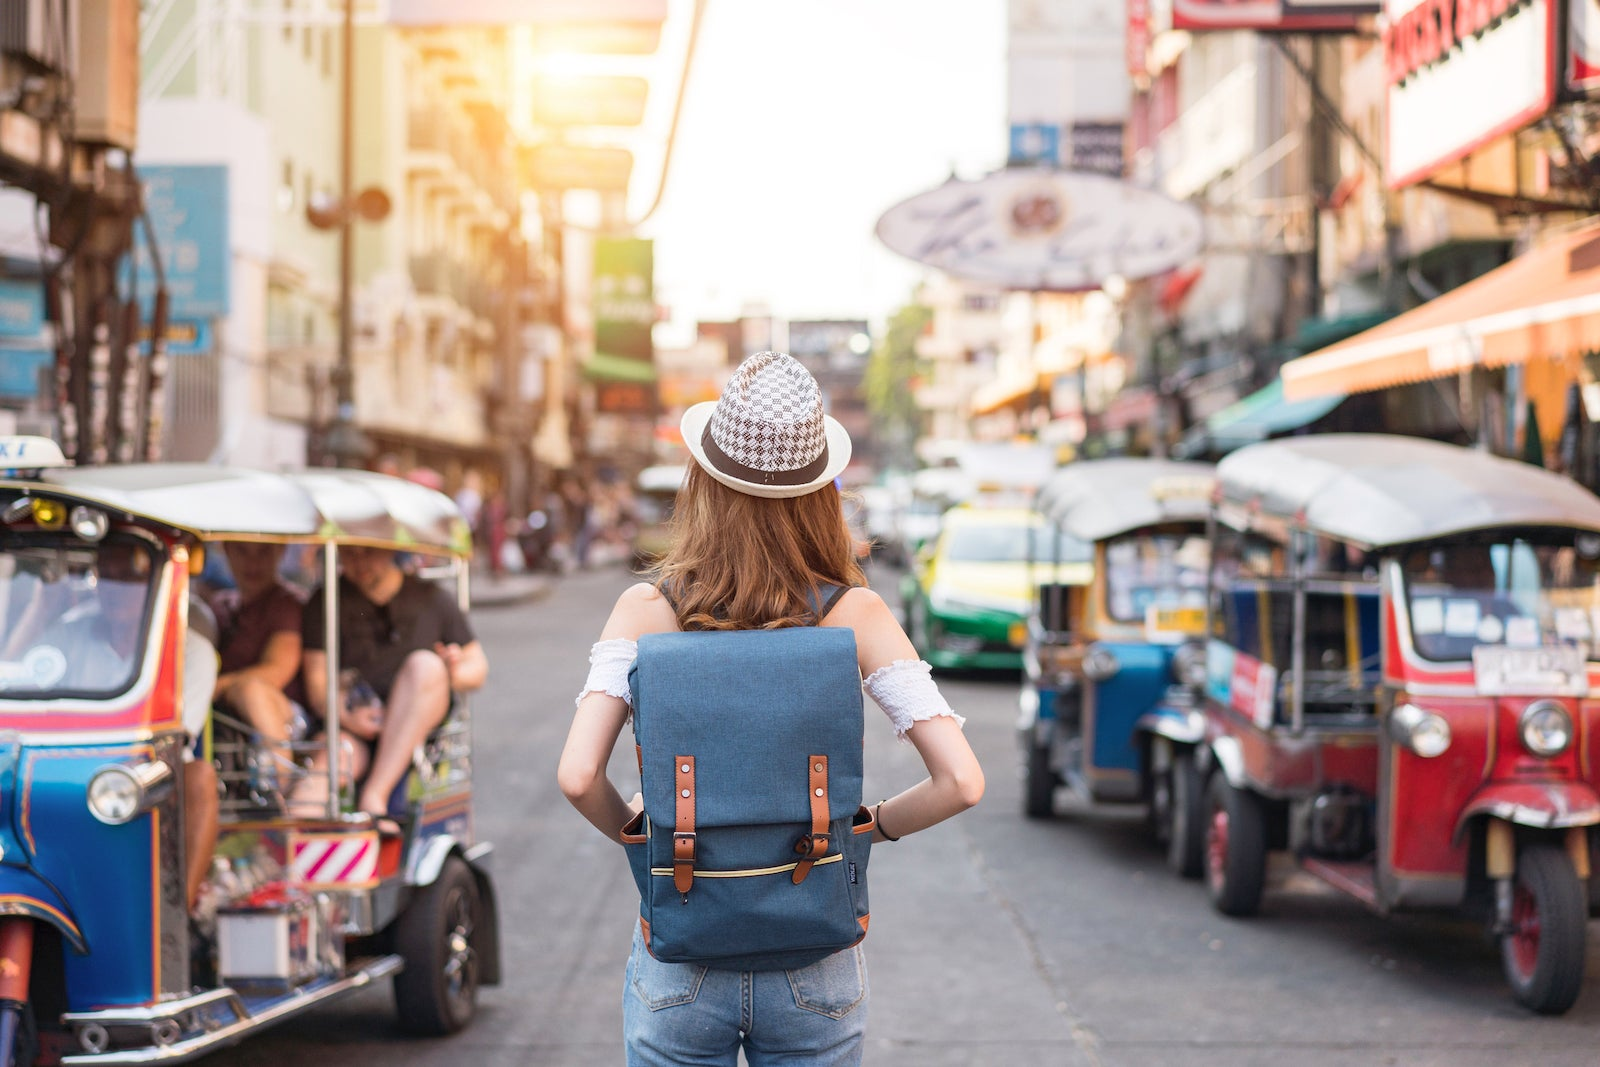 9 things people misunderstand about traveling on a budget - The Points Guy